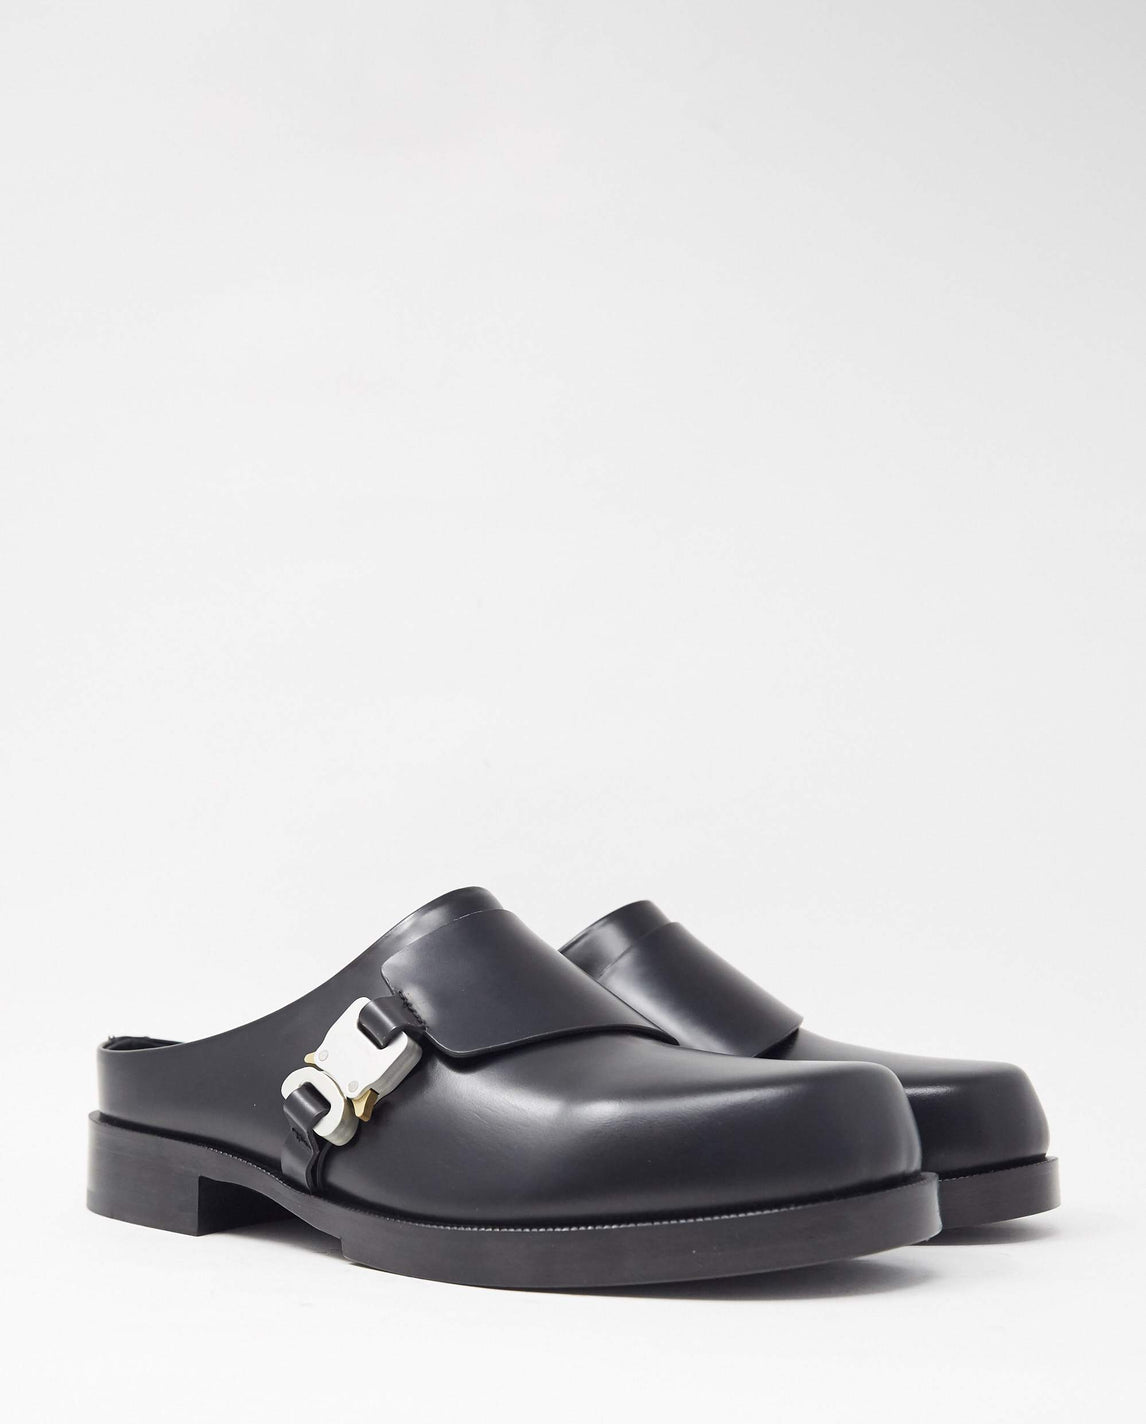 Formal Clog With Buckle - Black UNISEX 1017 ALYX 9SM